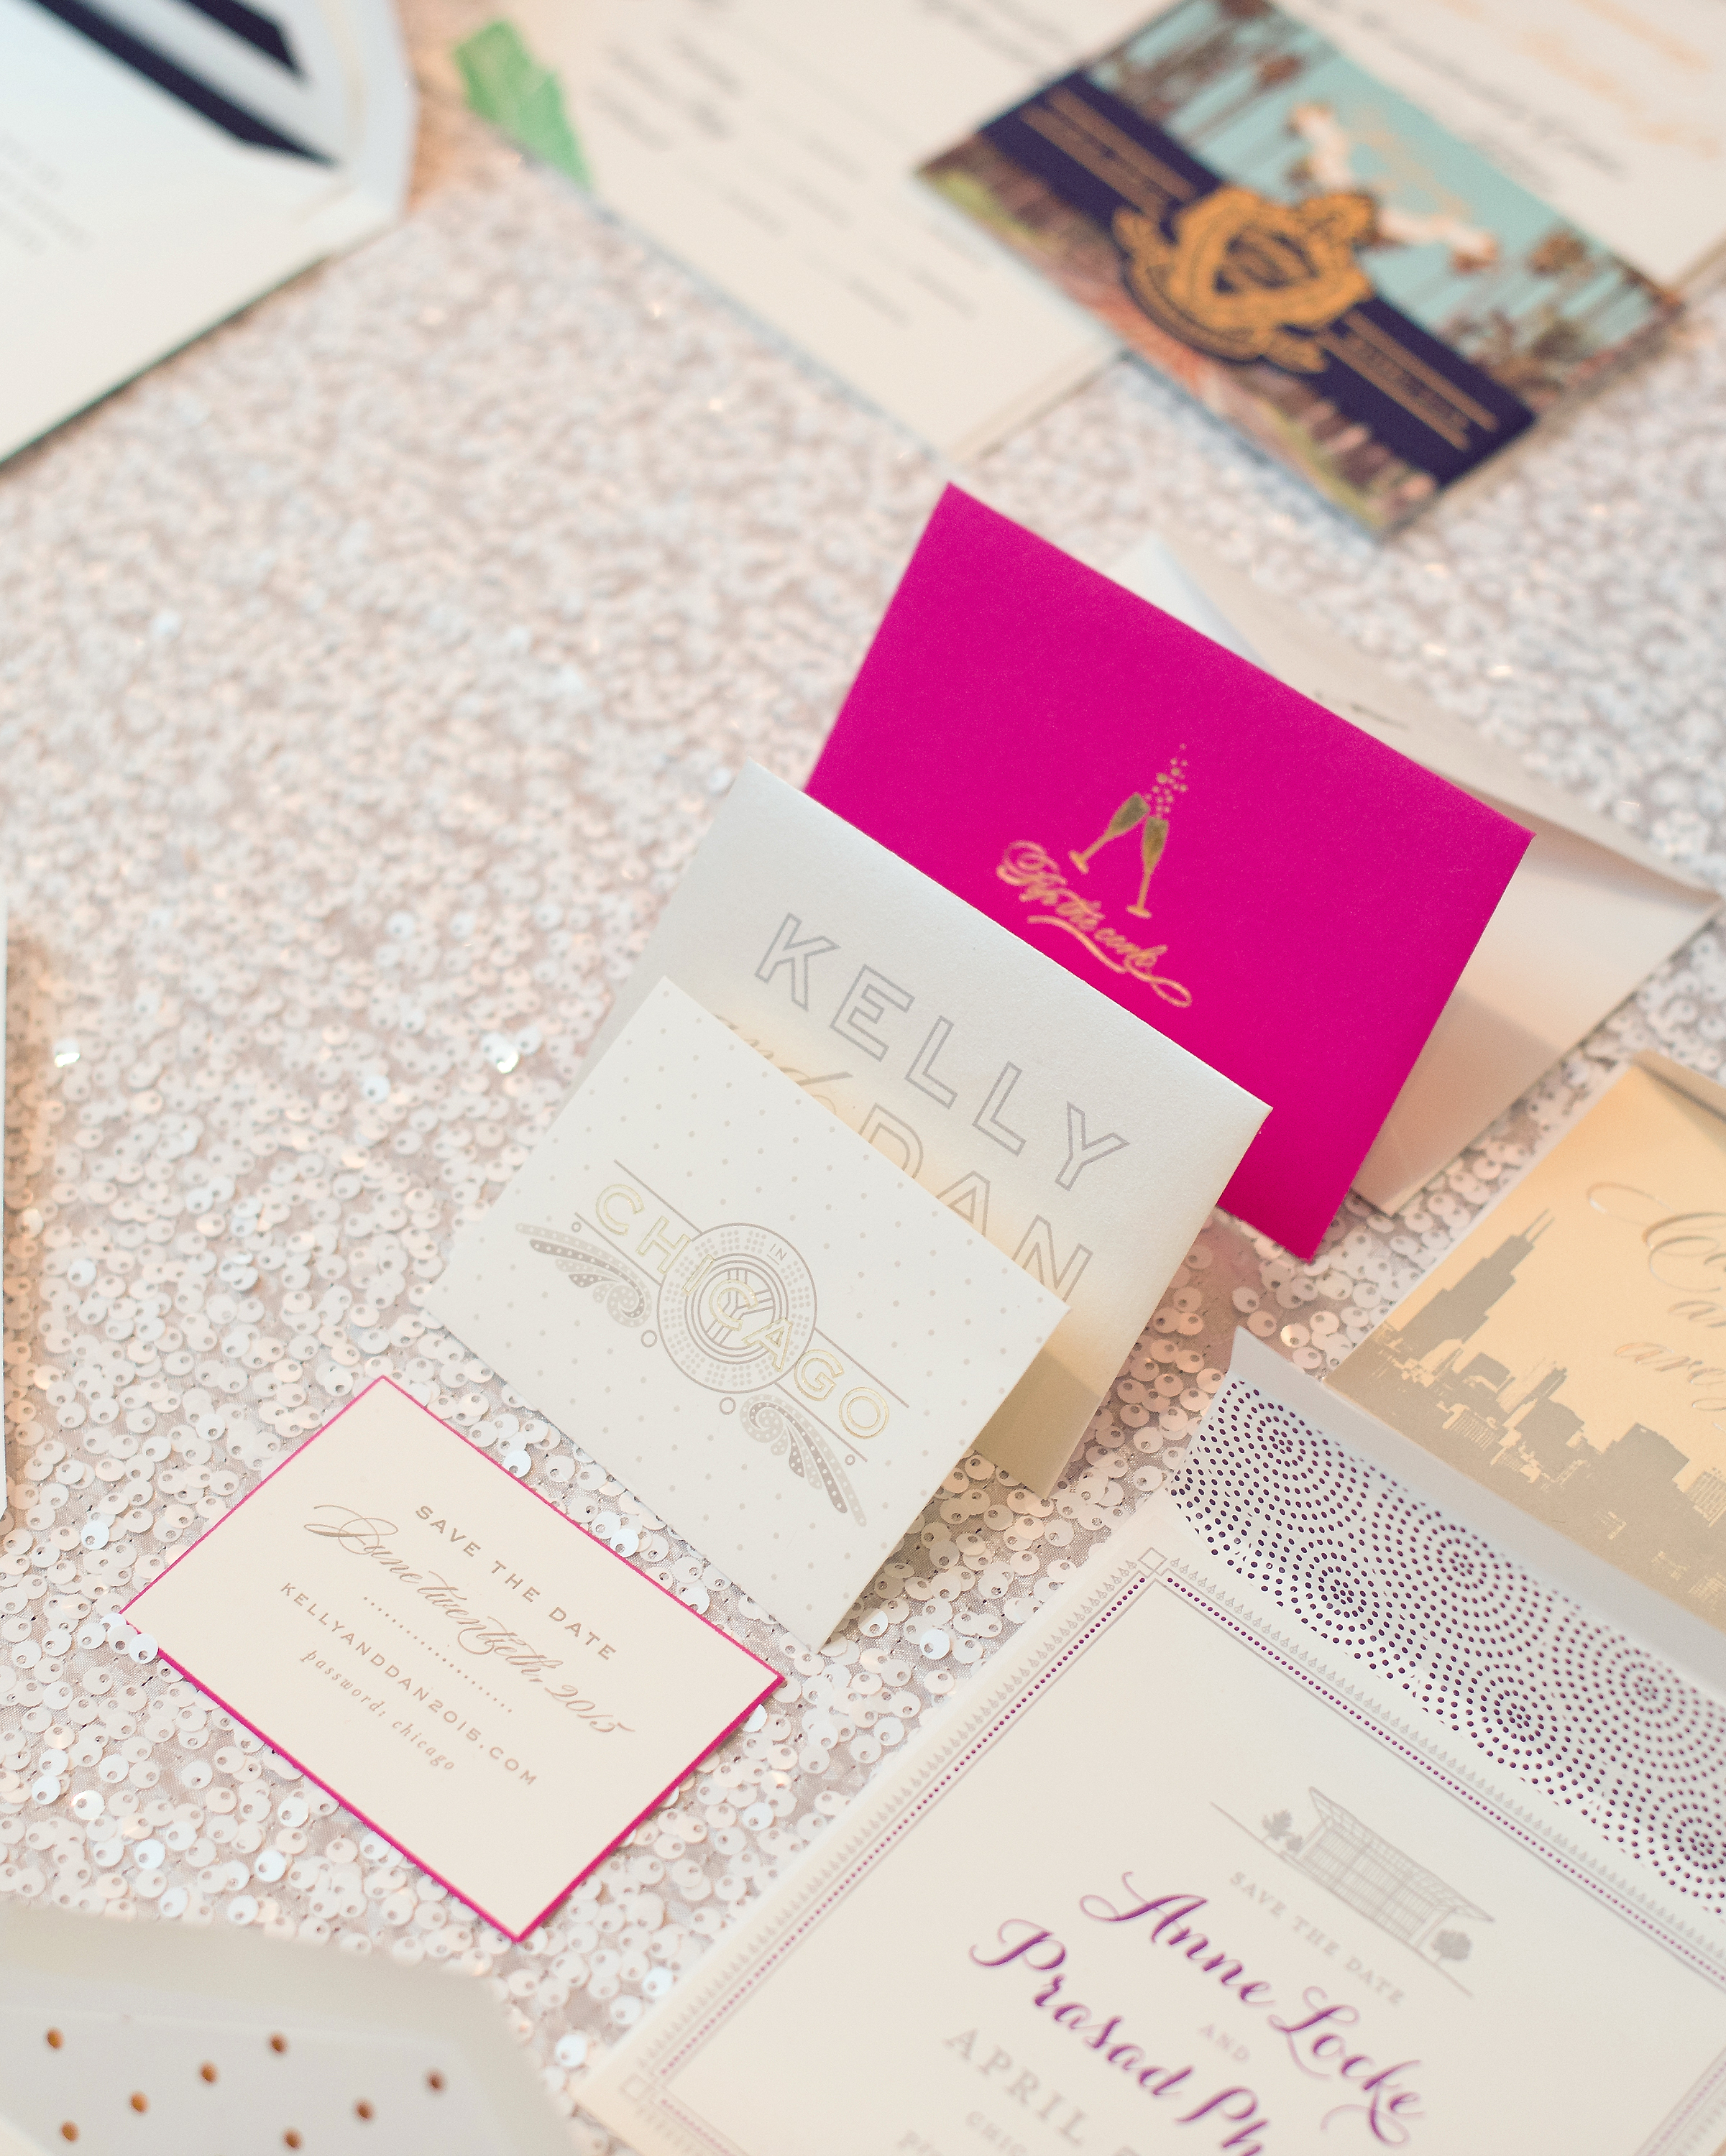 msw-chicago-party15-128-stationery-0315.jpg